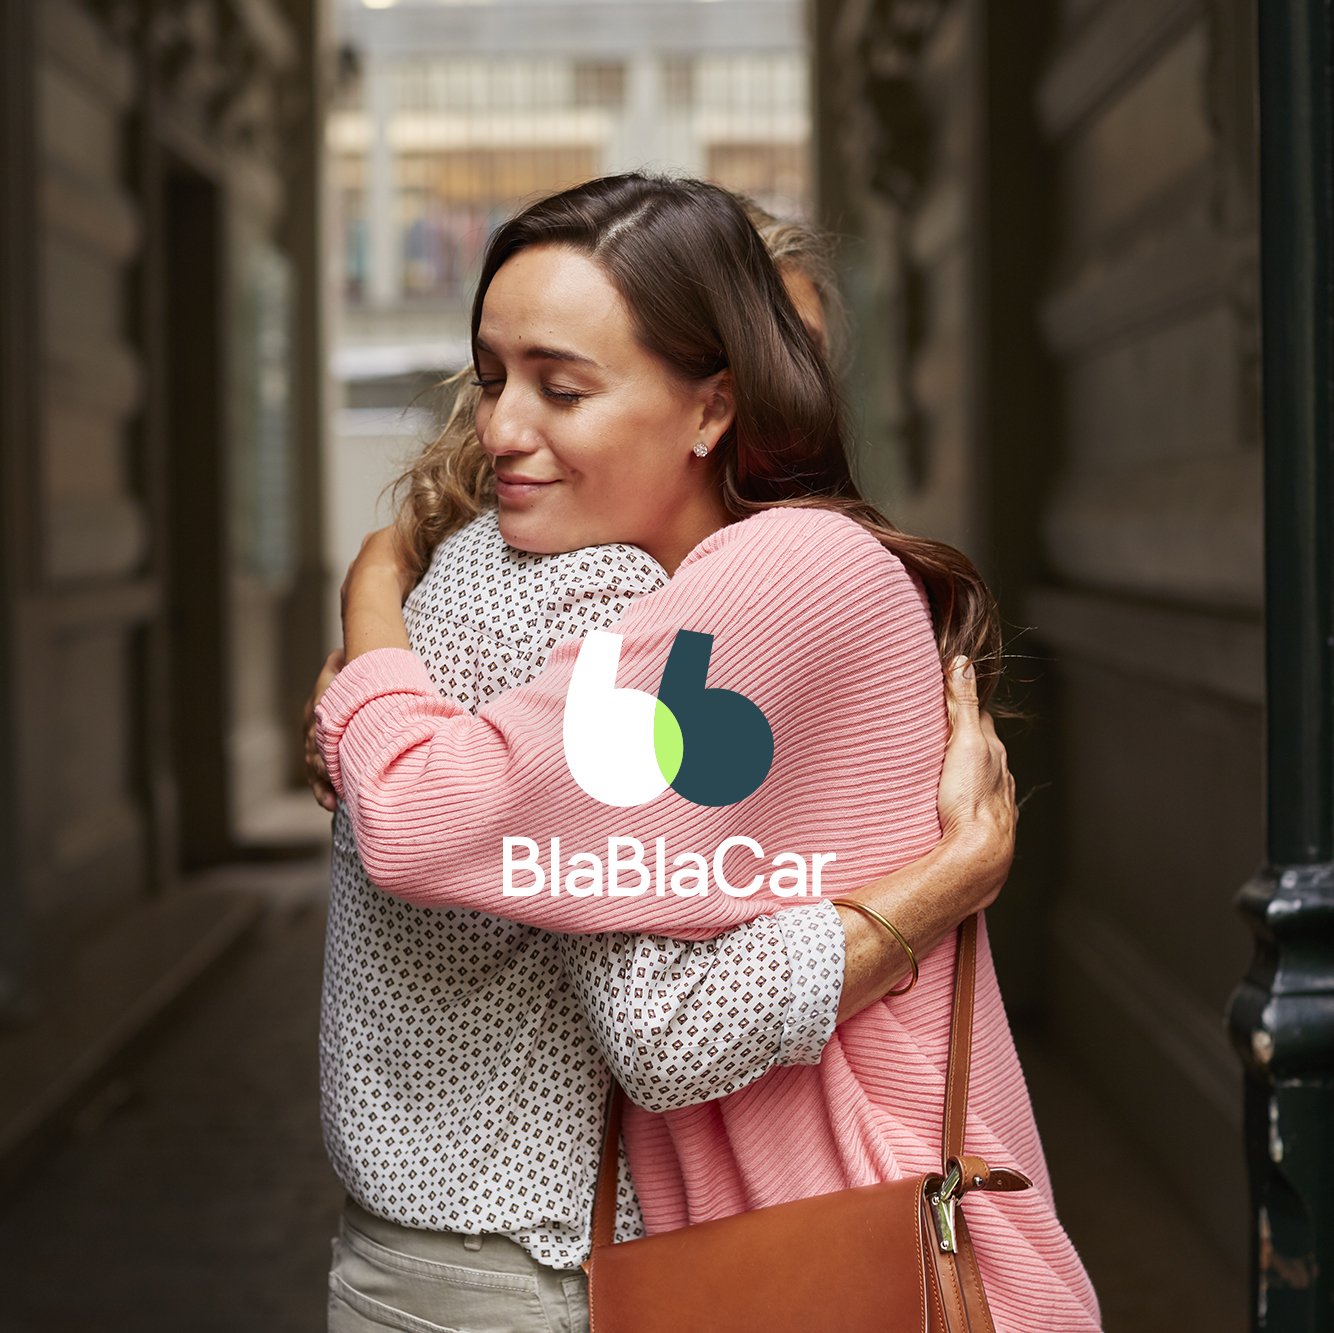 BlaBlaCar unveils new search engine, logo and visual identity